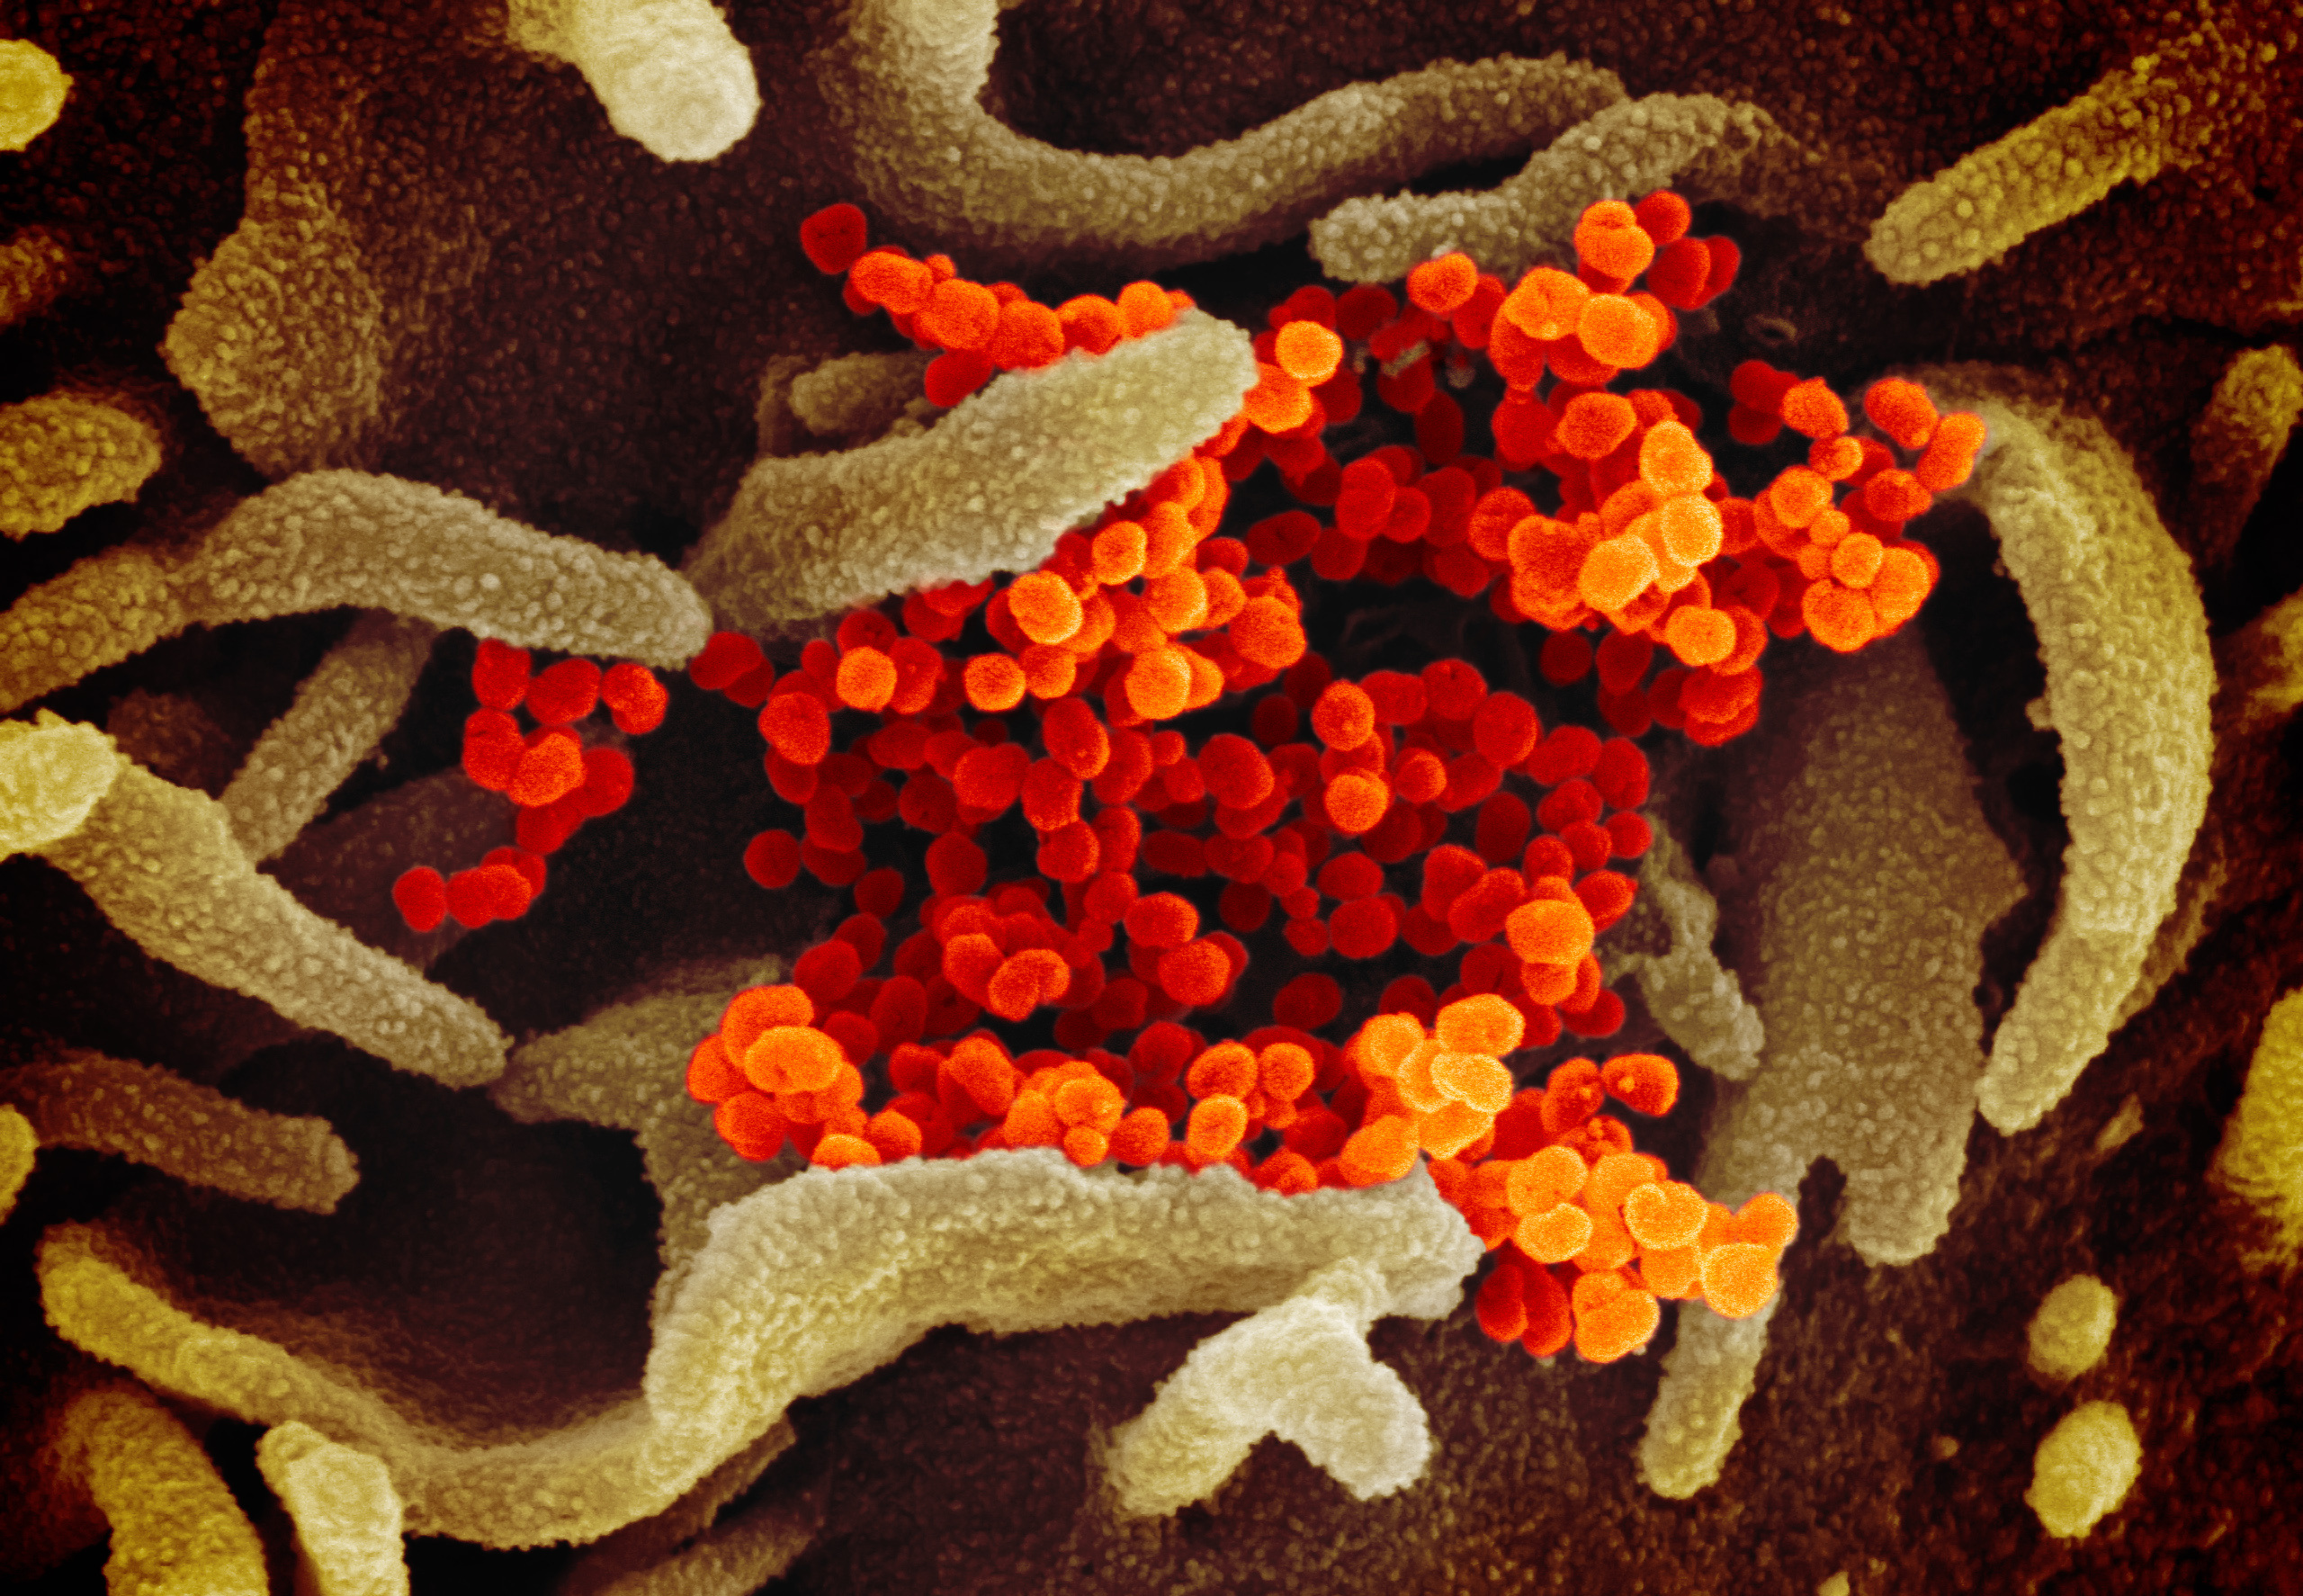 FDA authorizes first coronavirus antibody test